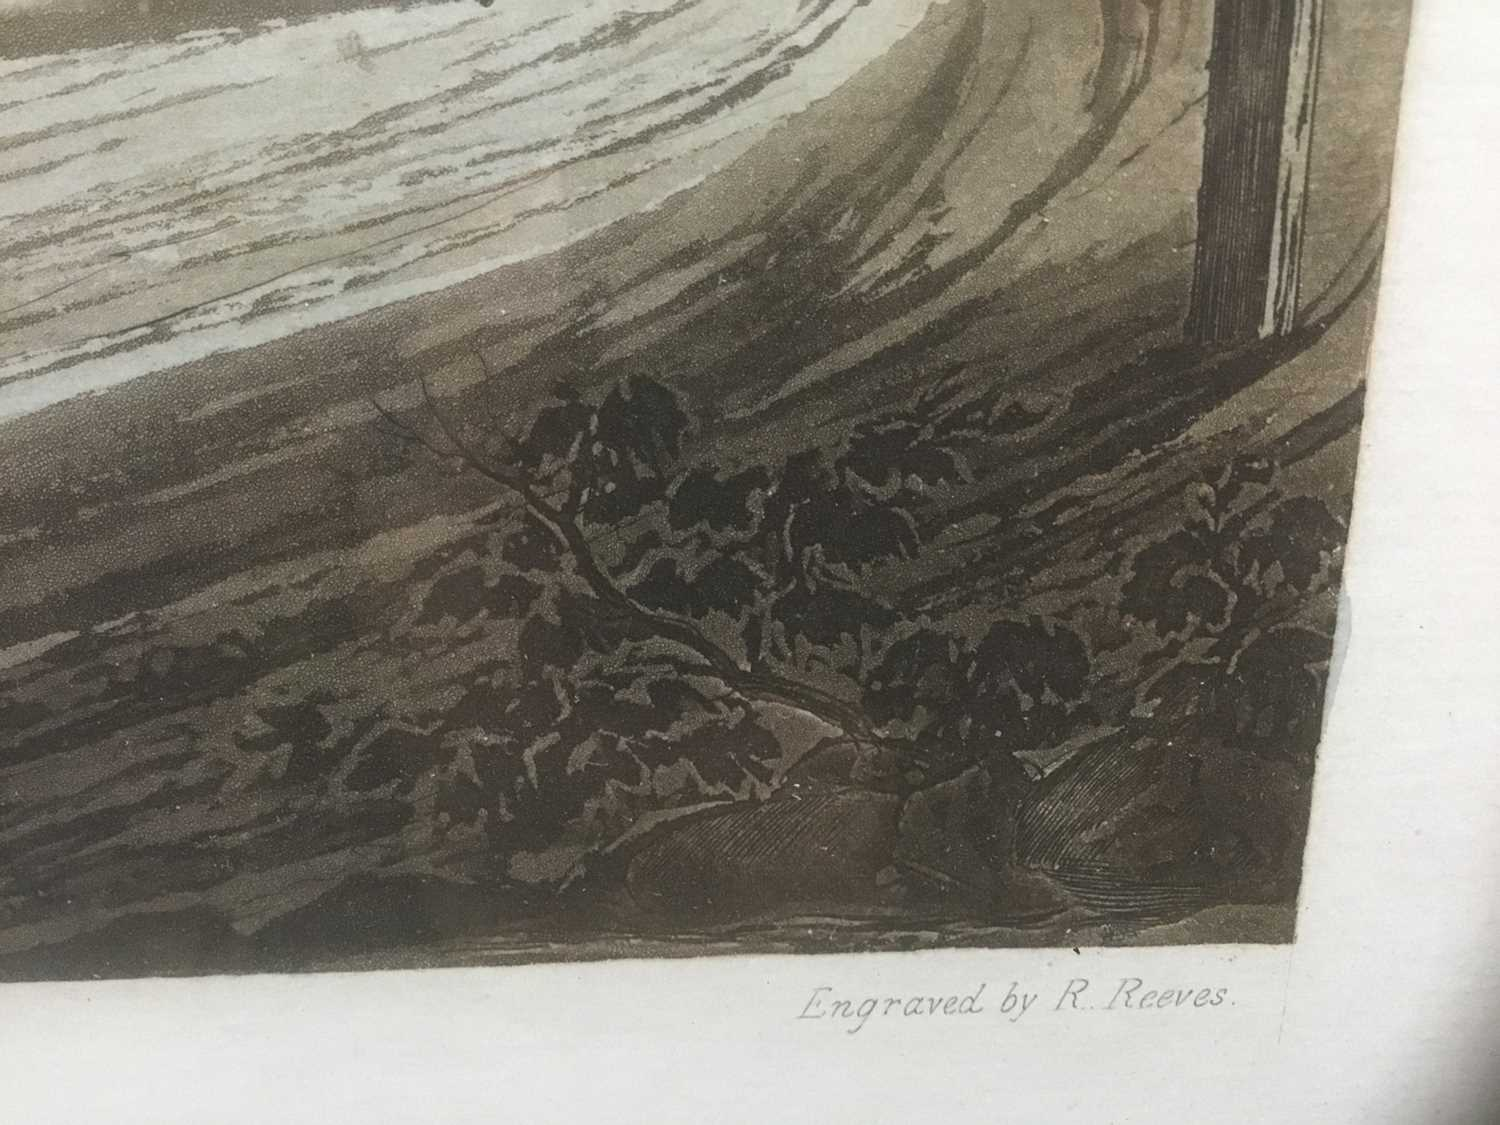 Pair of 19th century hand coloured aquatints by R. Reeves after C. Newhouse, coaching scenes entitle - Image 4 of 11